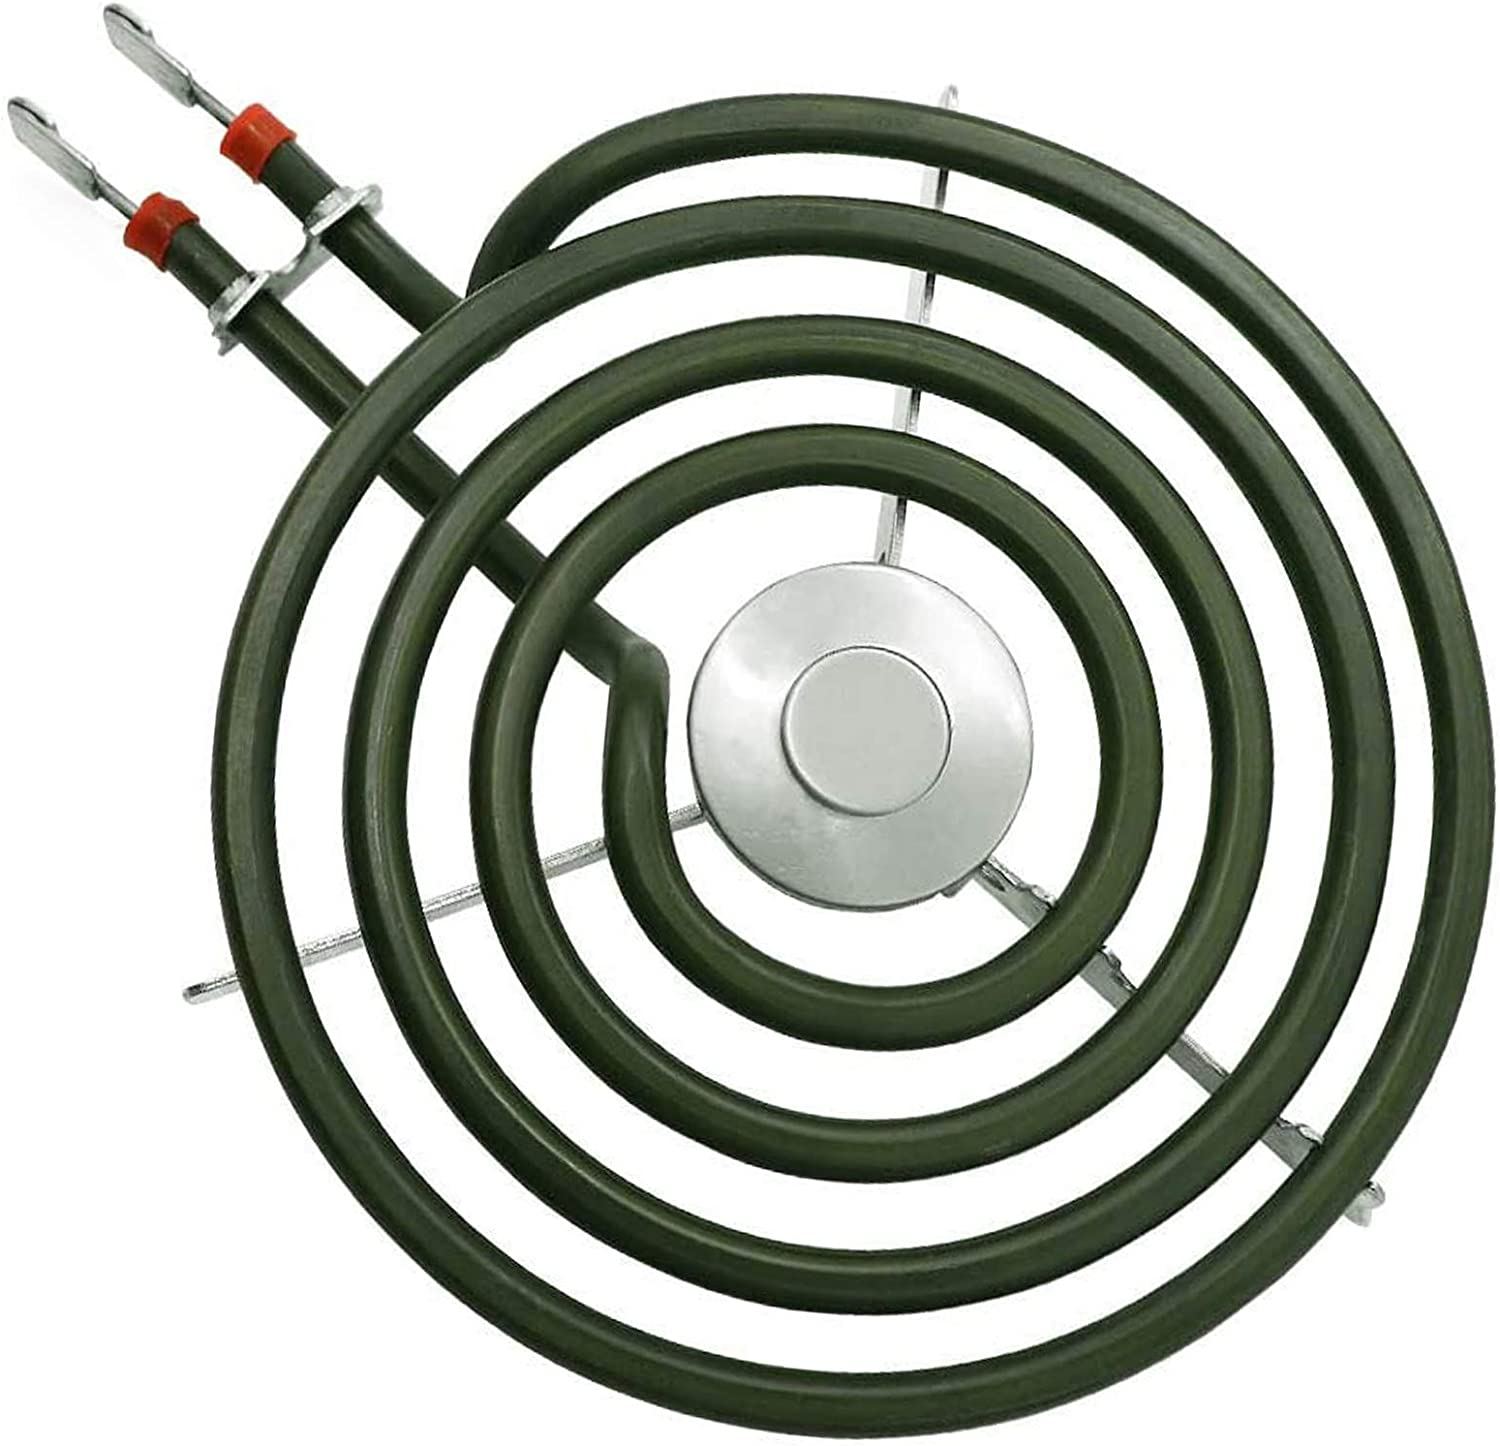 Exact Replacements Ers30t10078 6-Inch Ge Surface Element